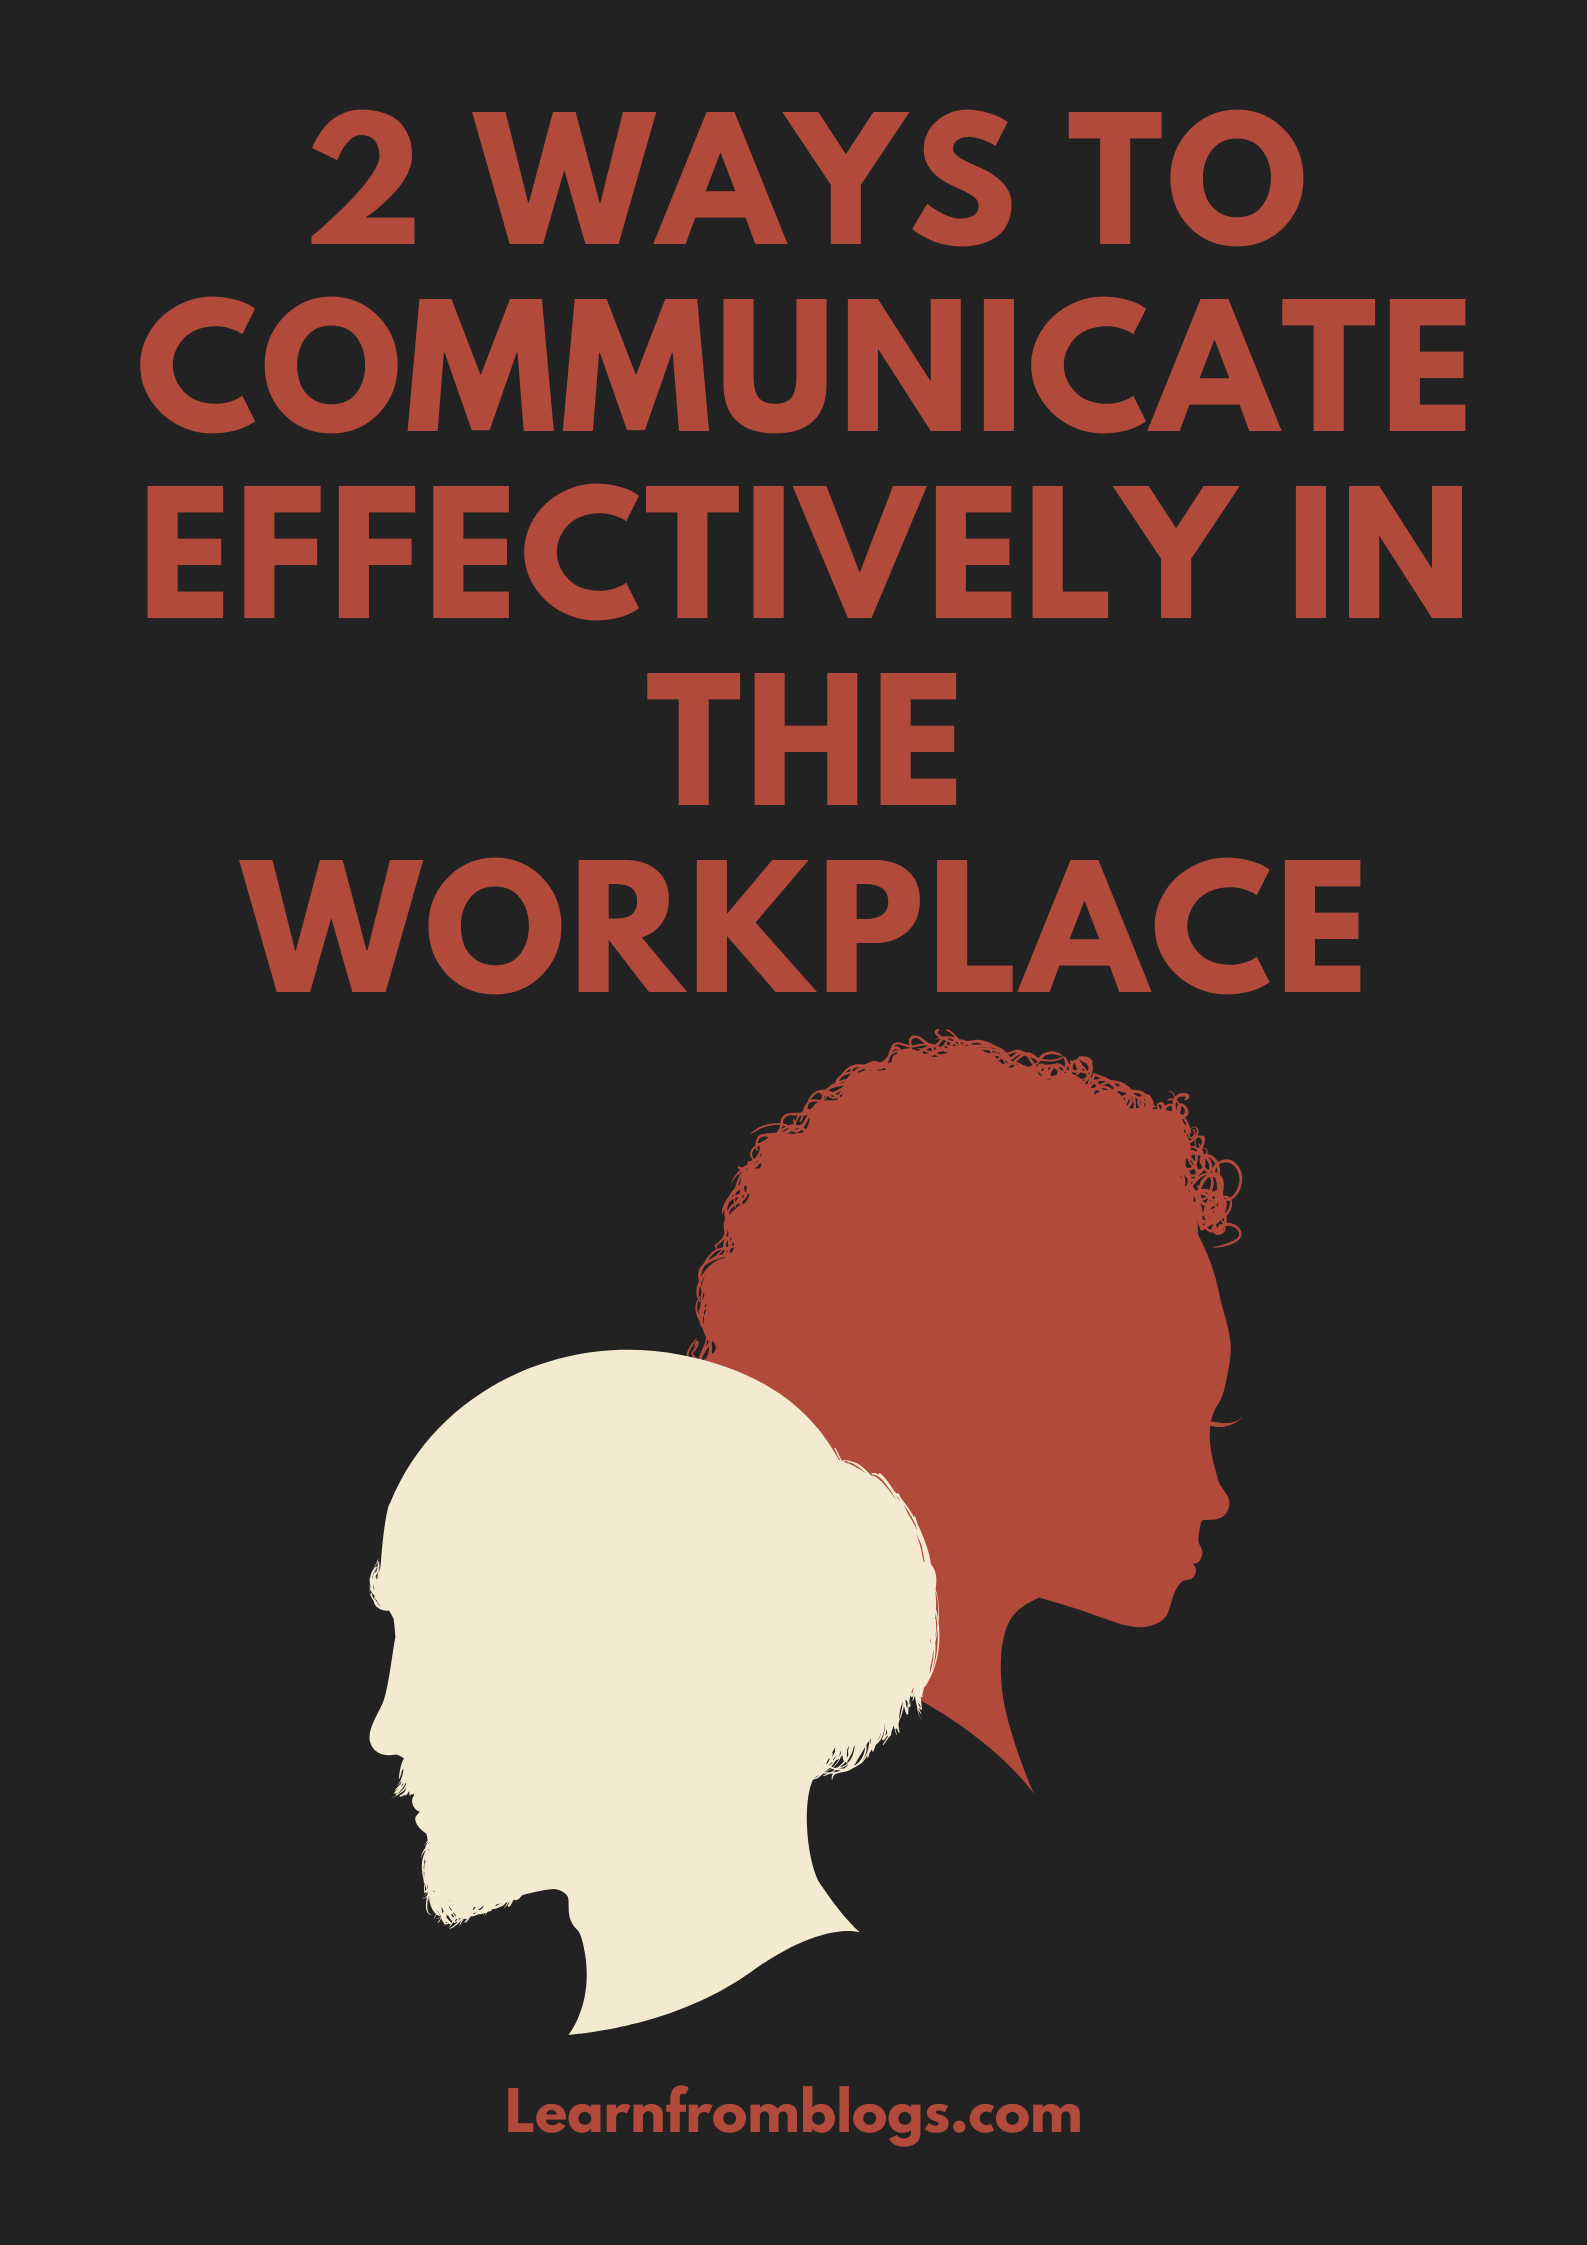 2 Ways to Communicate Effectively in the Workplace.png